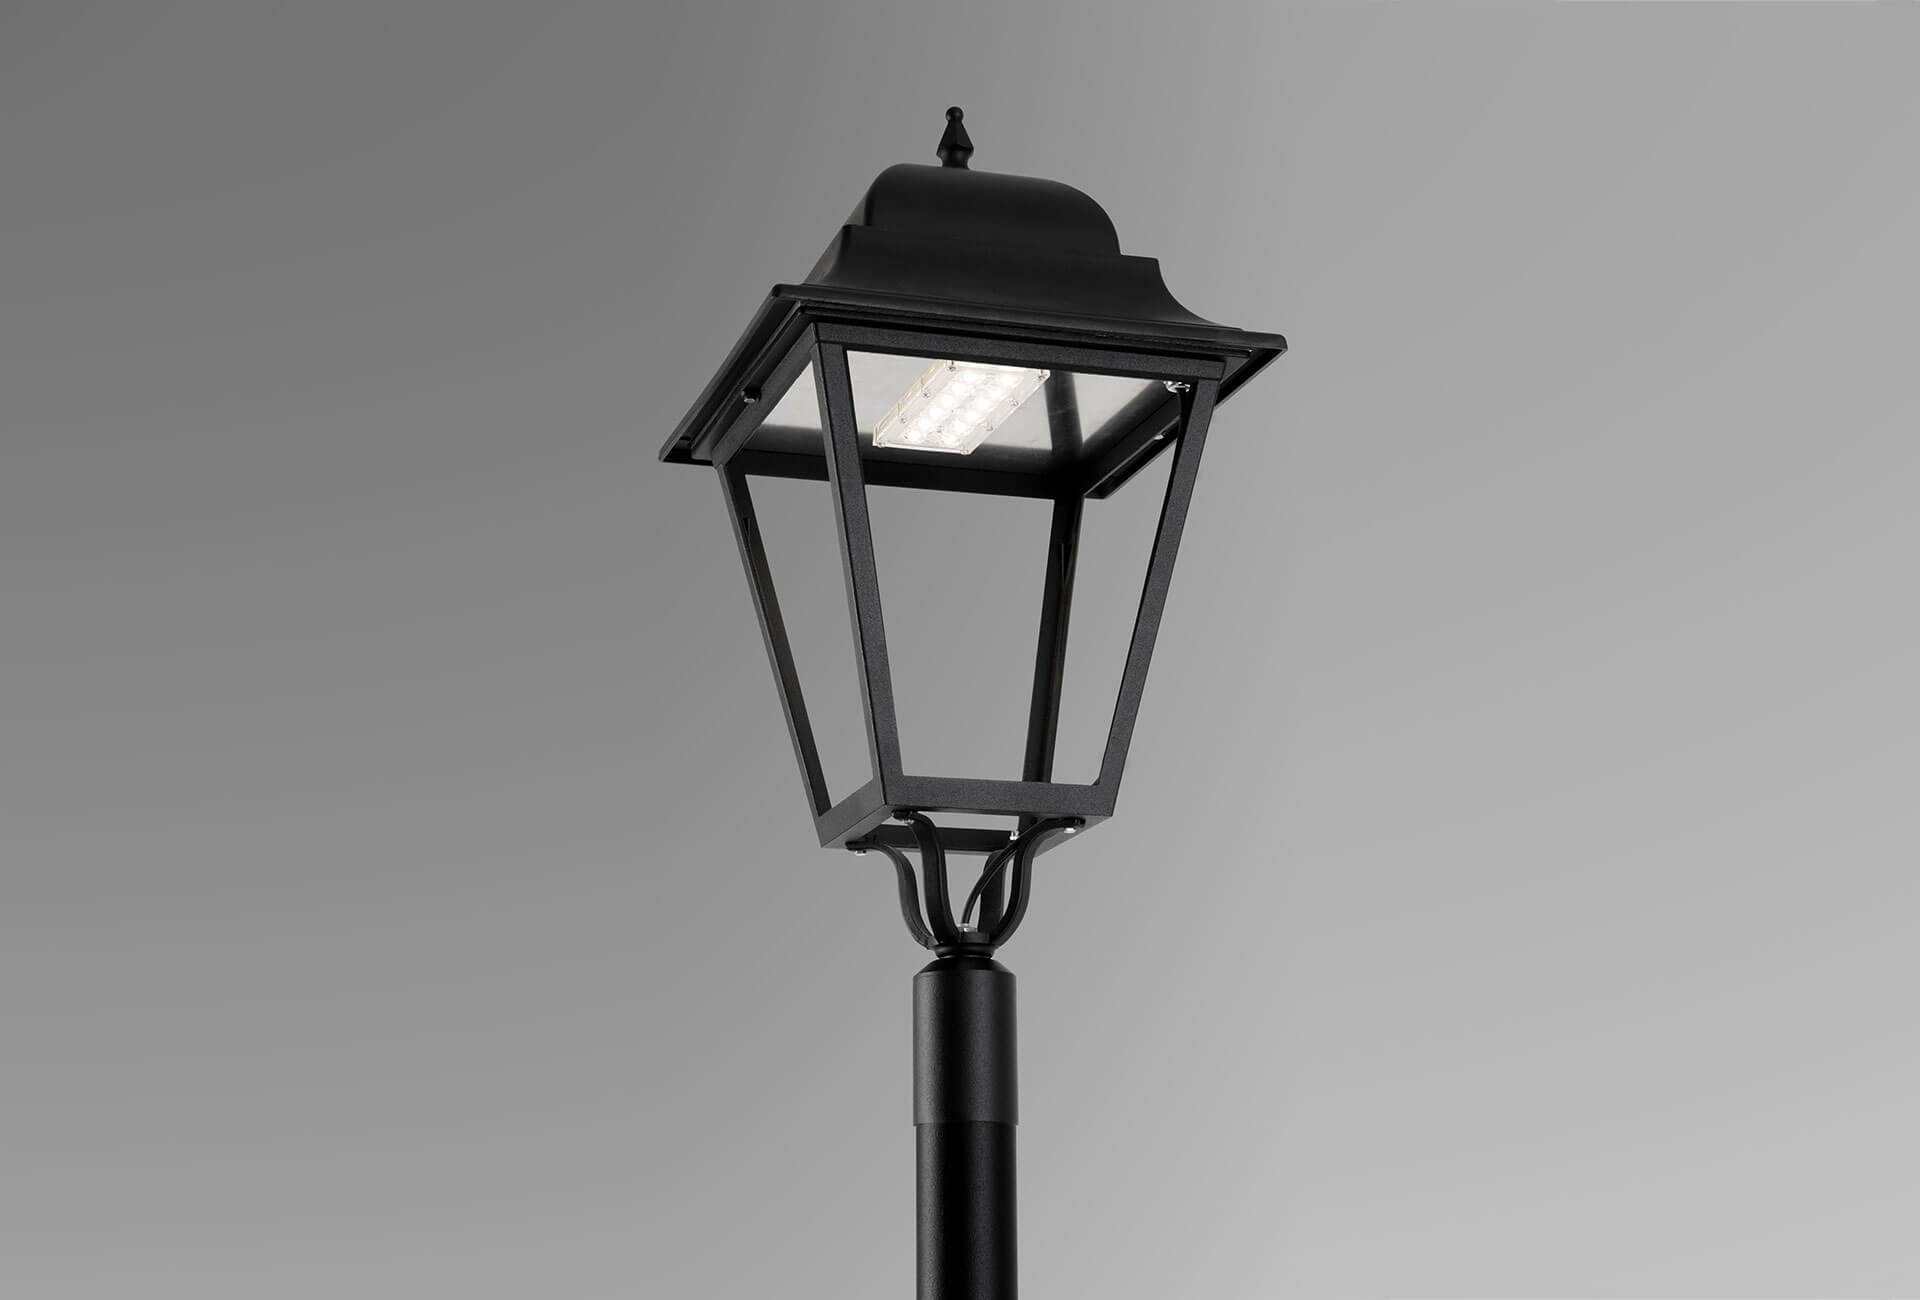 Luxtella | LED street light or LED street lamp for public lighting